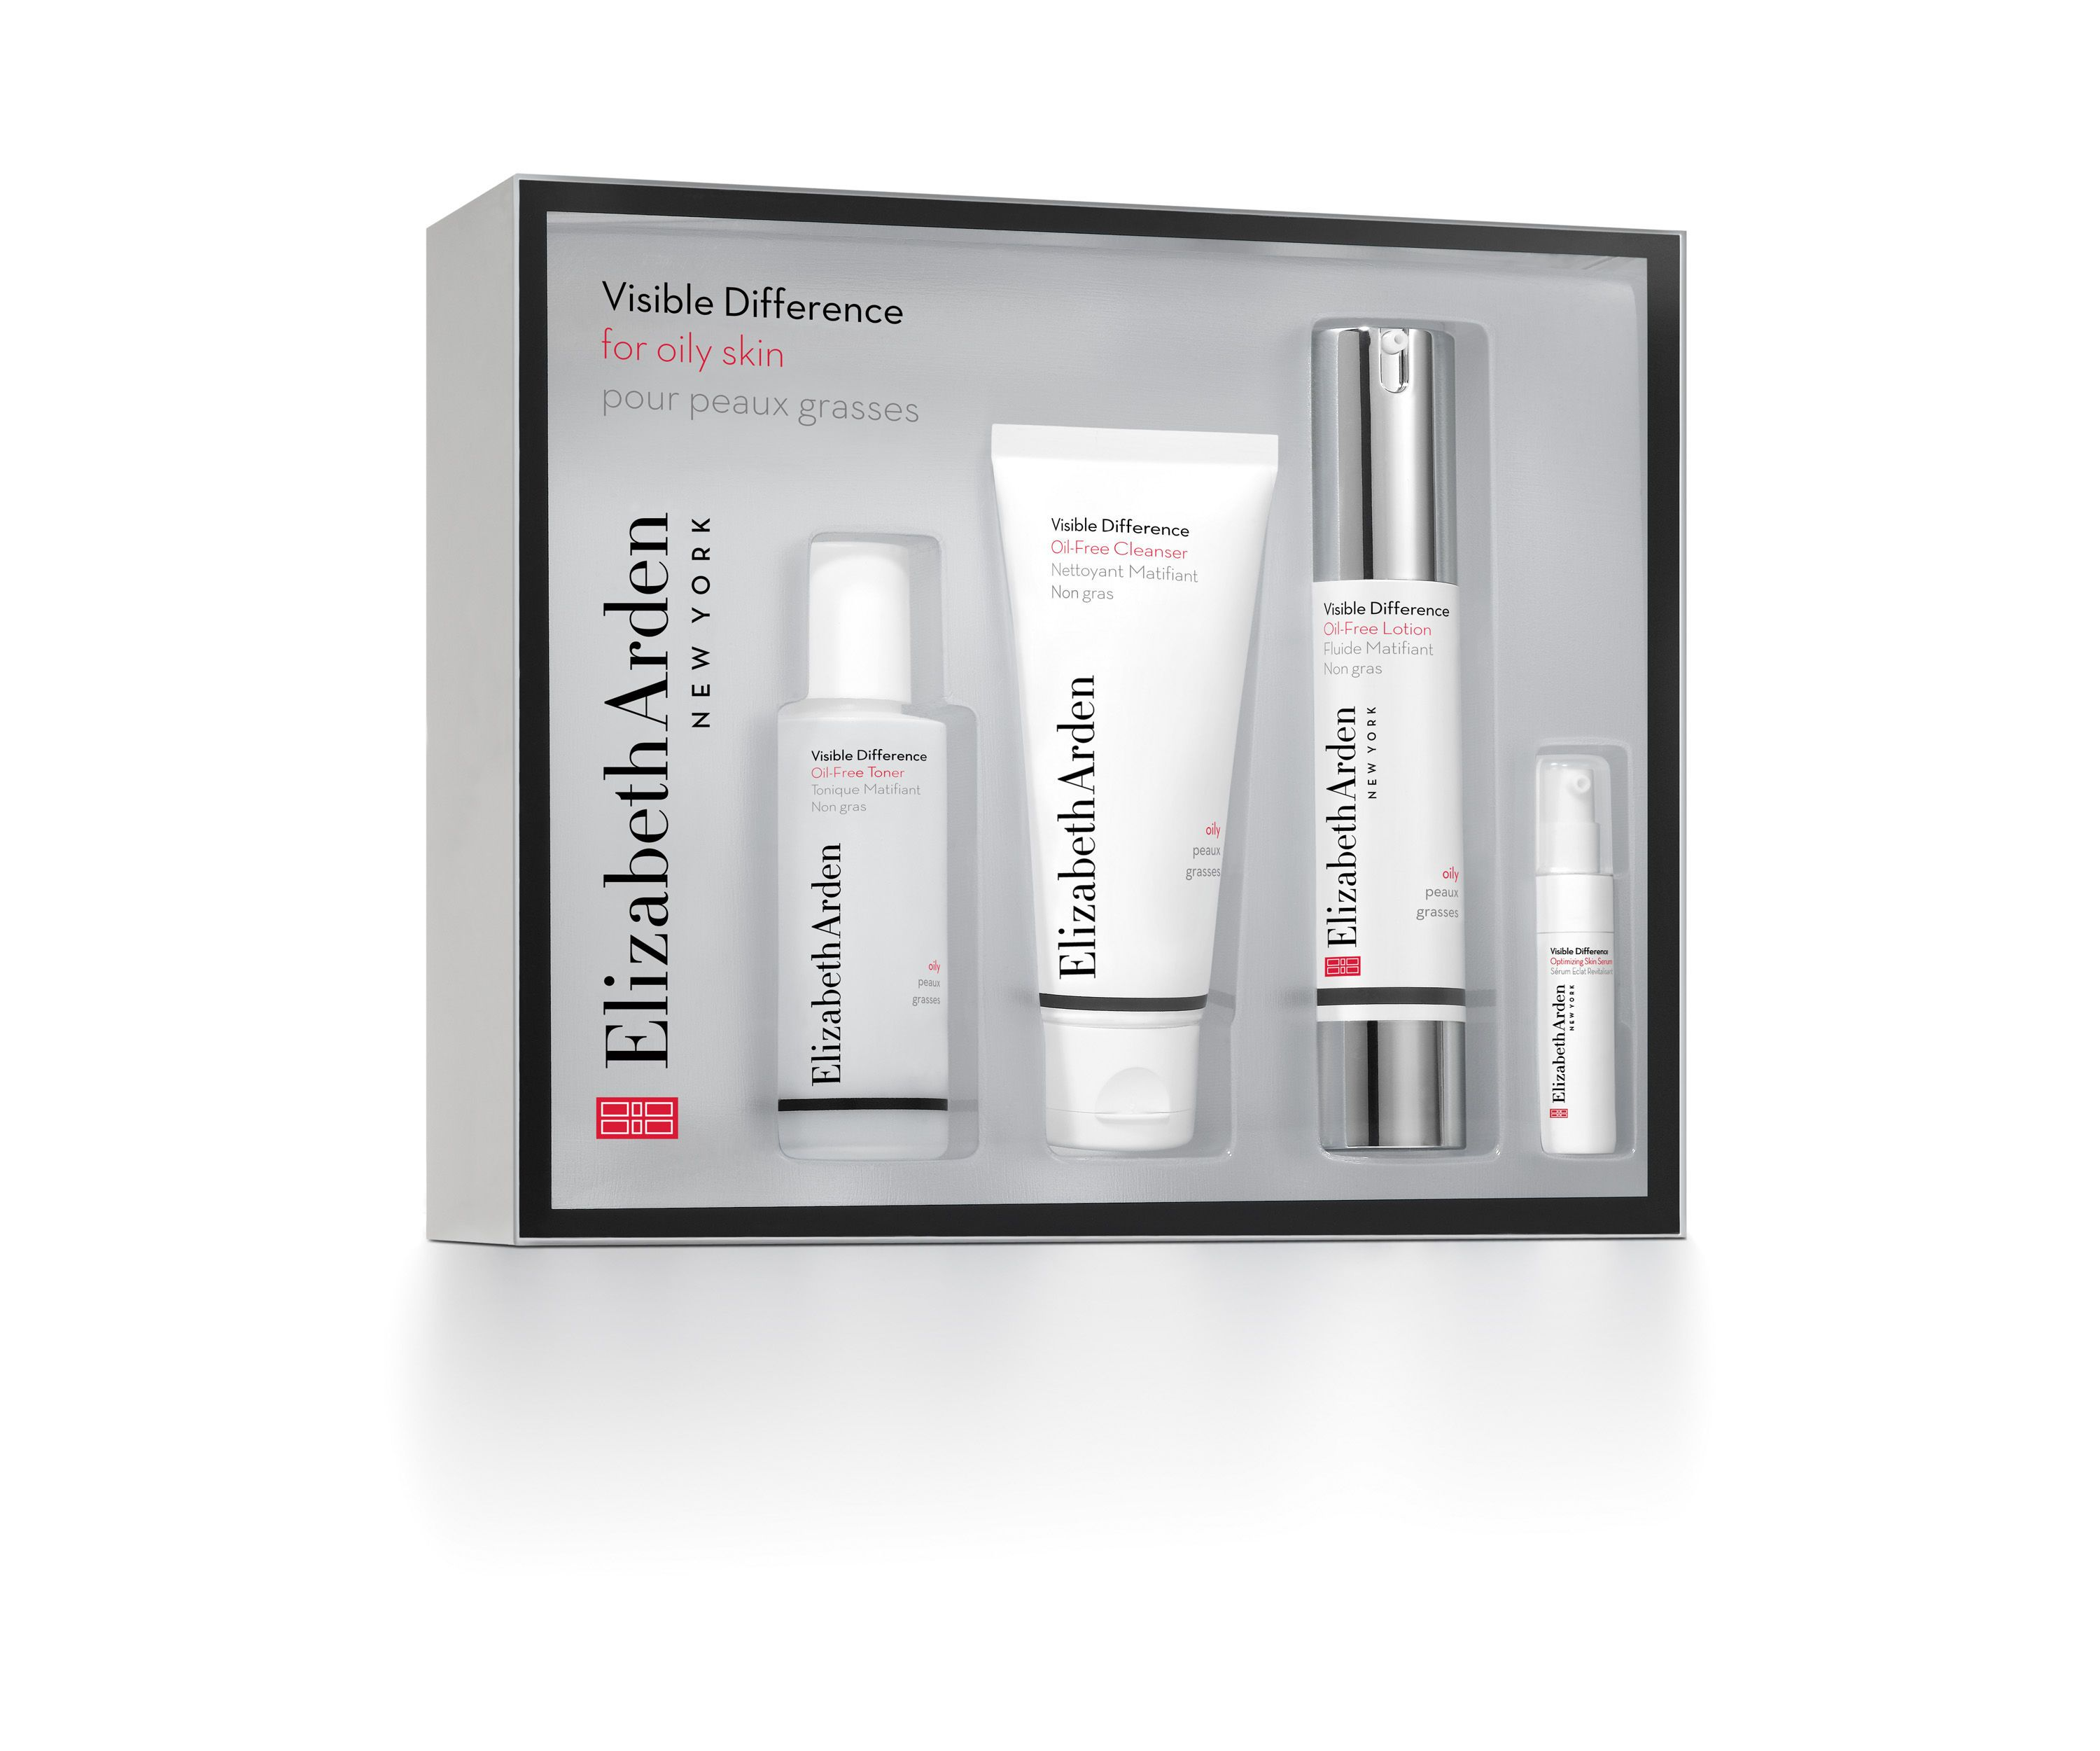 Elizabeth Arden Visible Difference Oily Skin Set